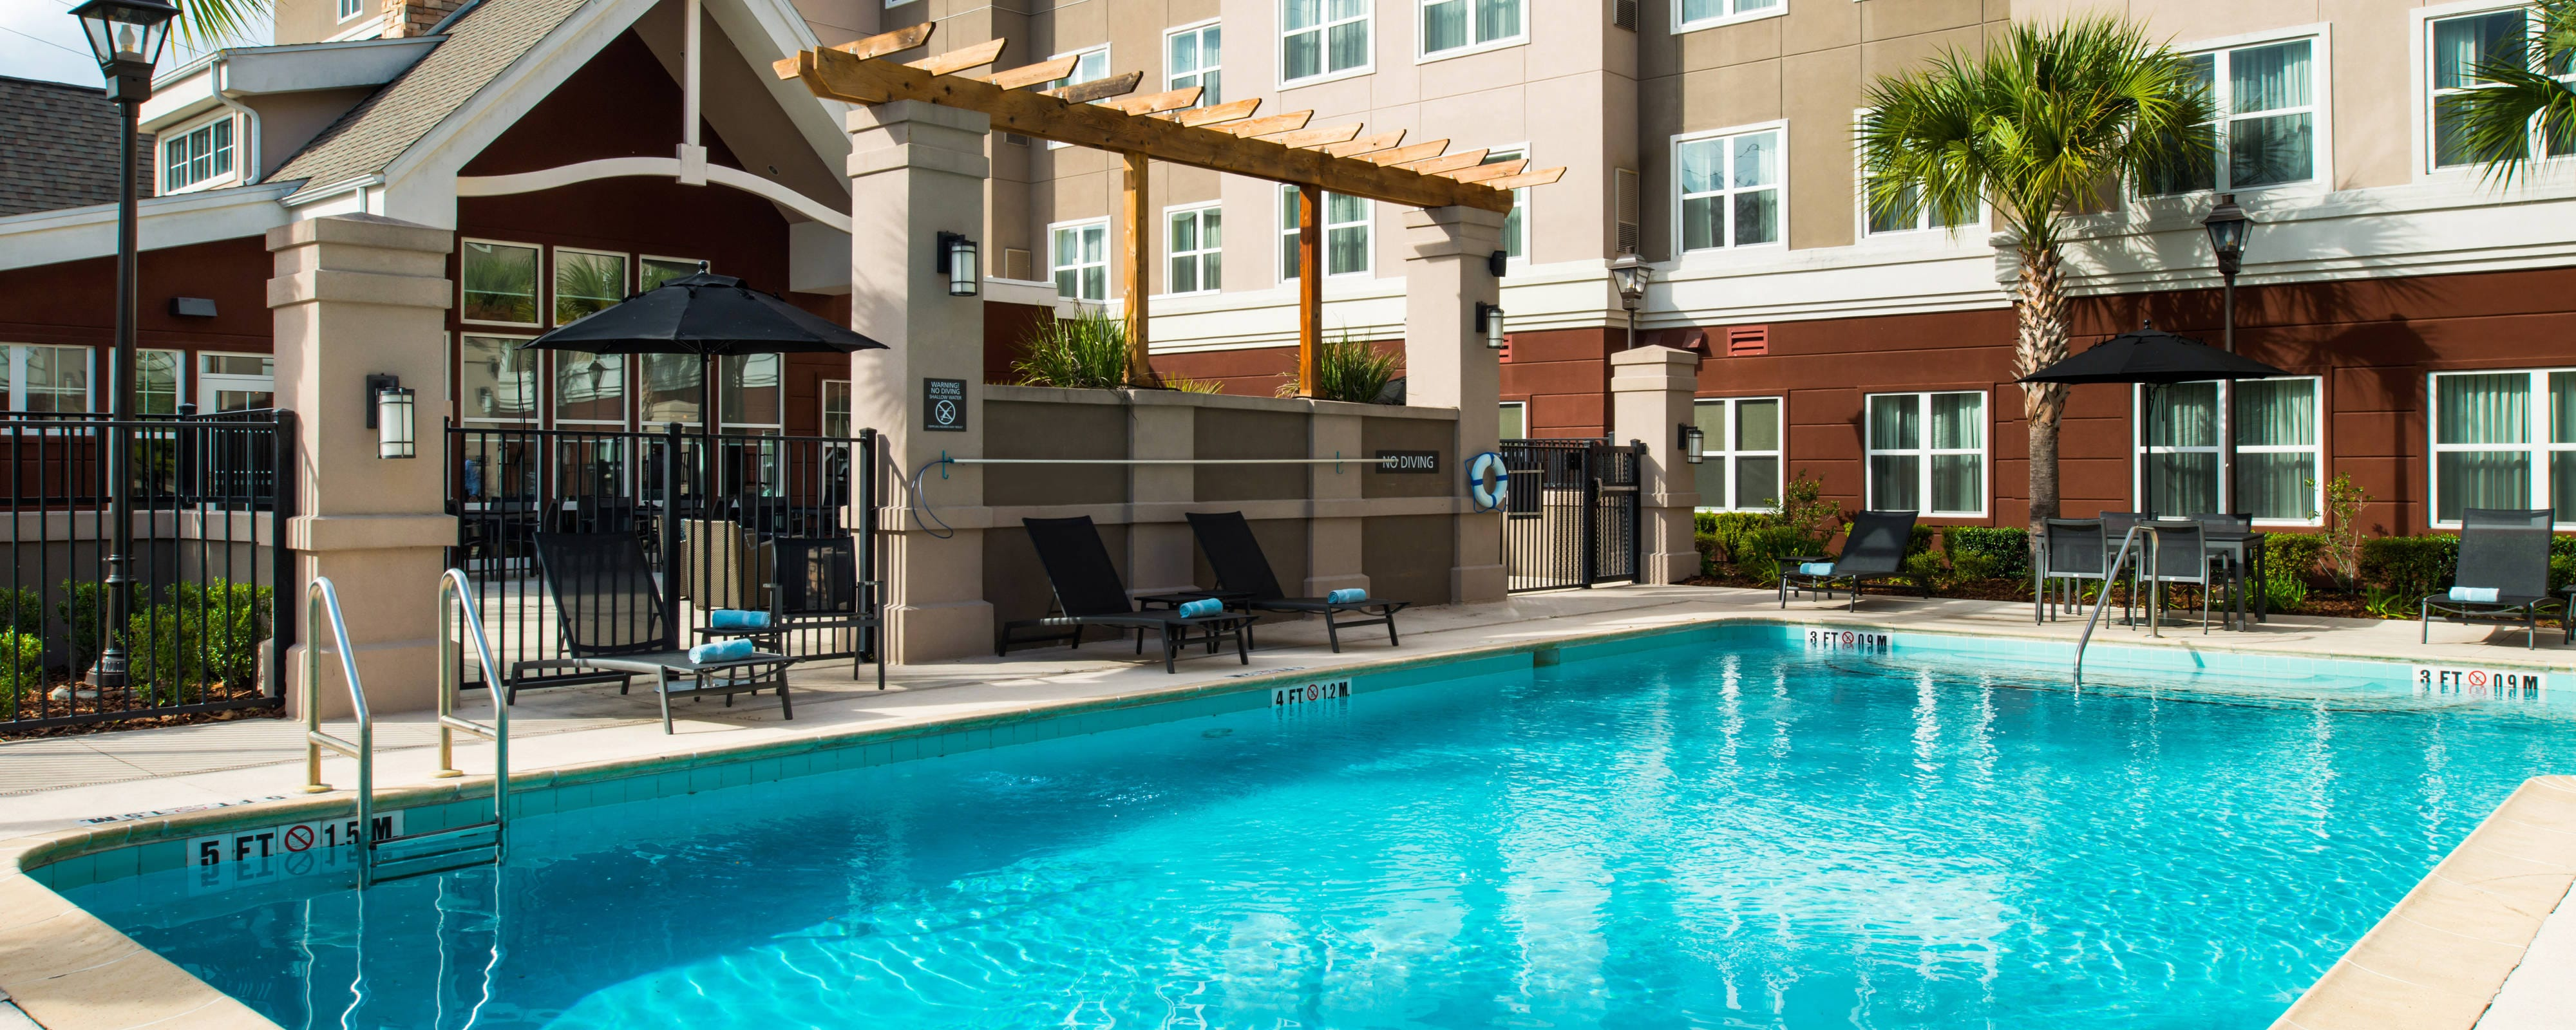 Hotels In Gainesville Fl With Pool